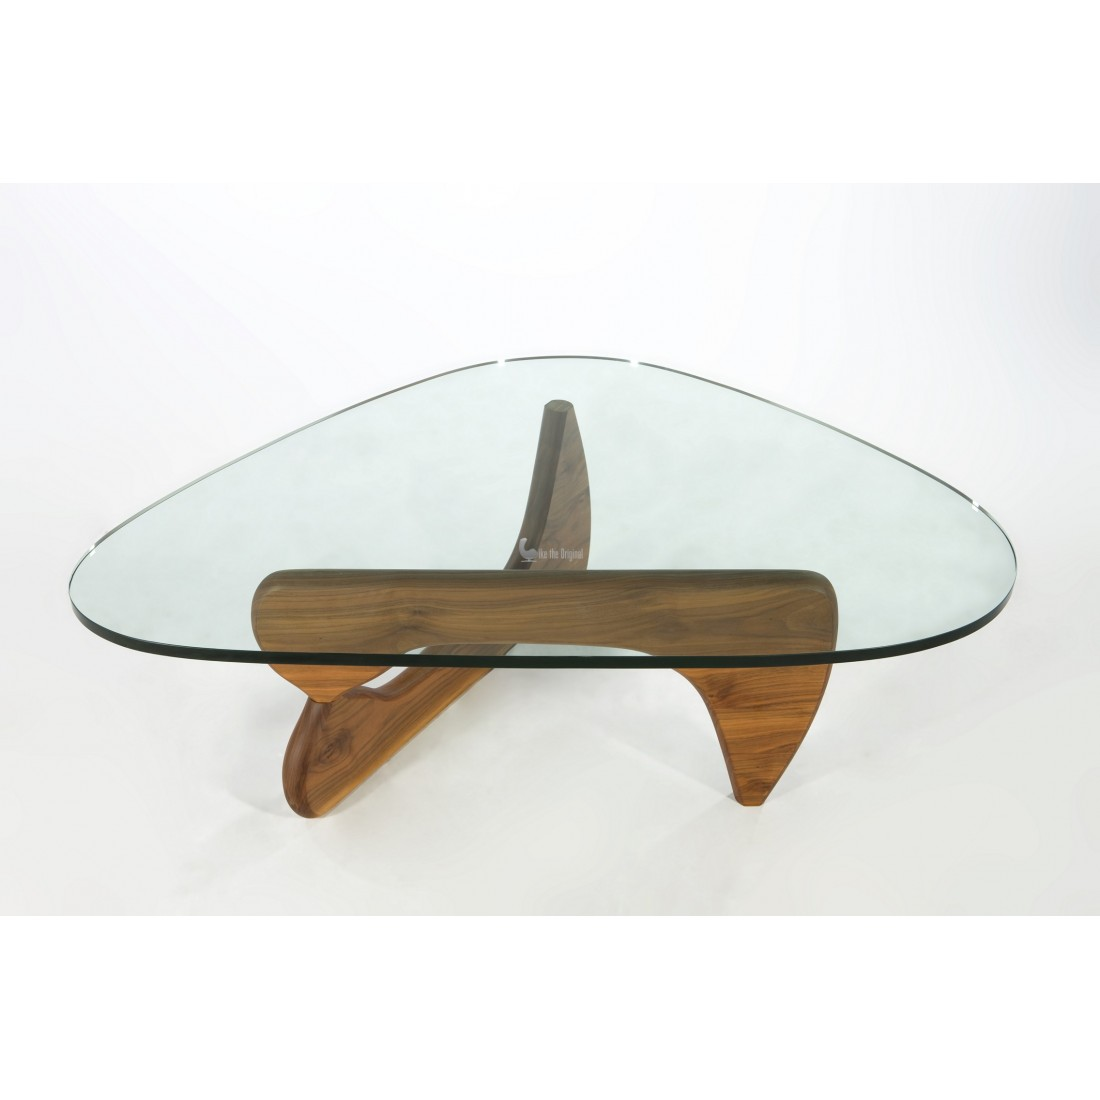 Small Glass Coffee Table Modern Isamu Noguchi Style Modern Wooden Coffee Table With Glass Top (View 5 of 10)